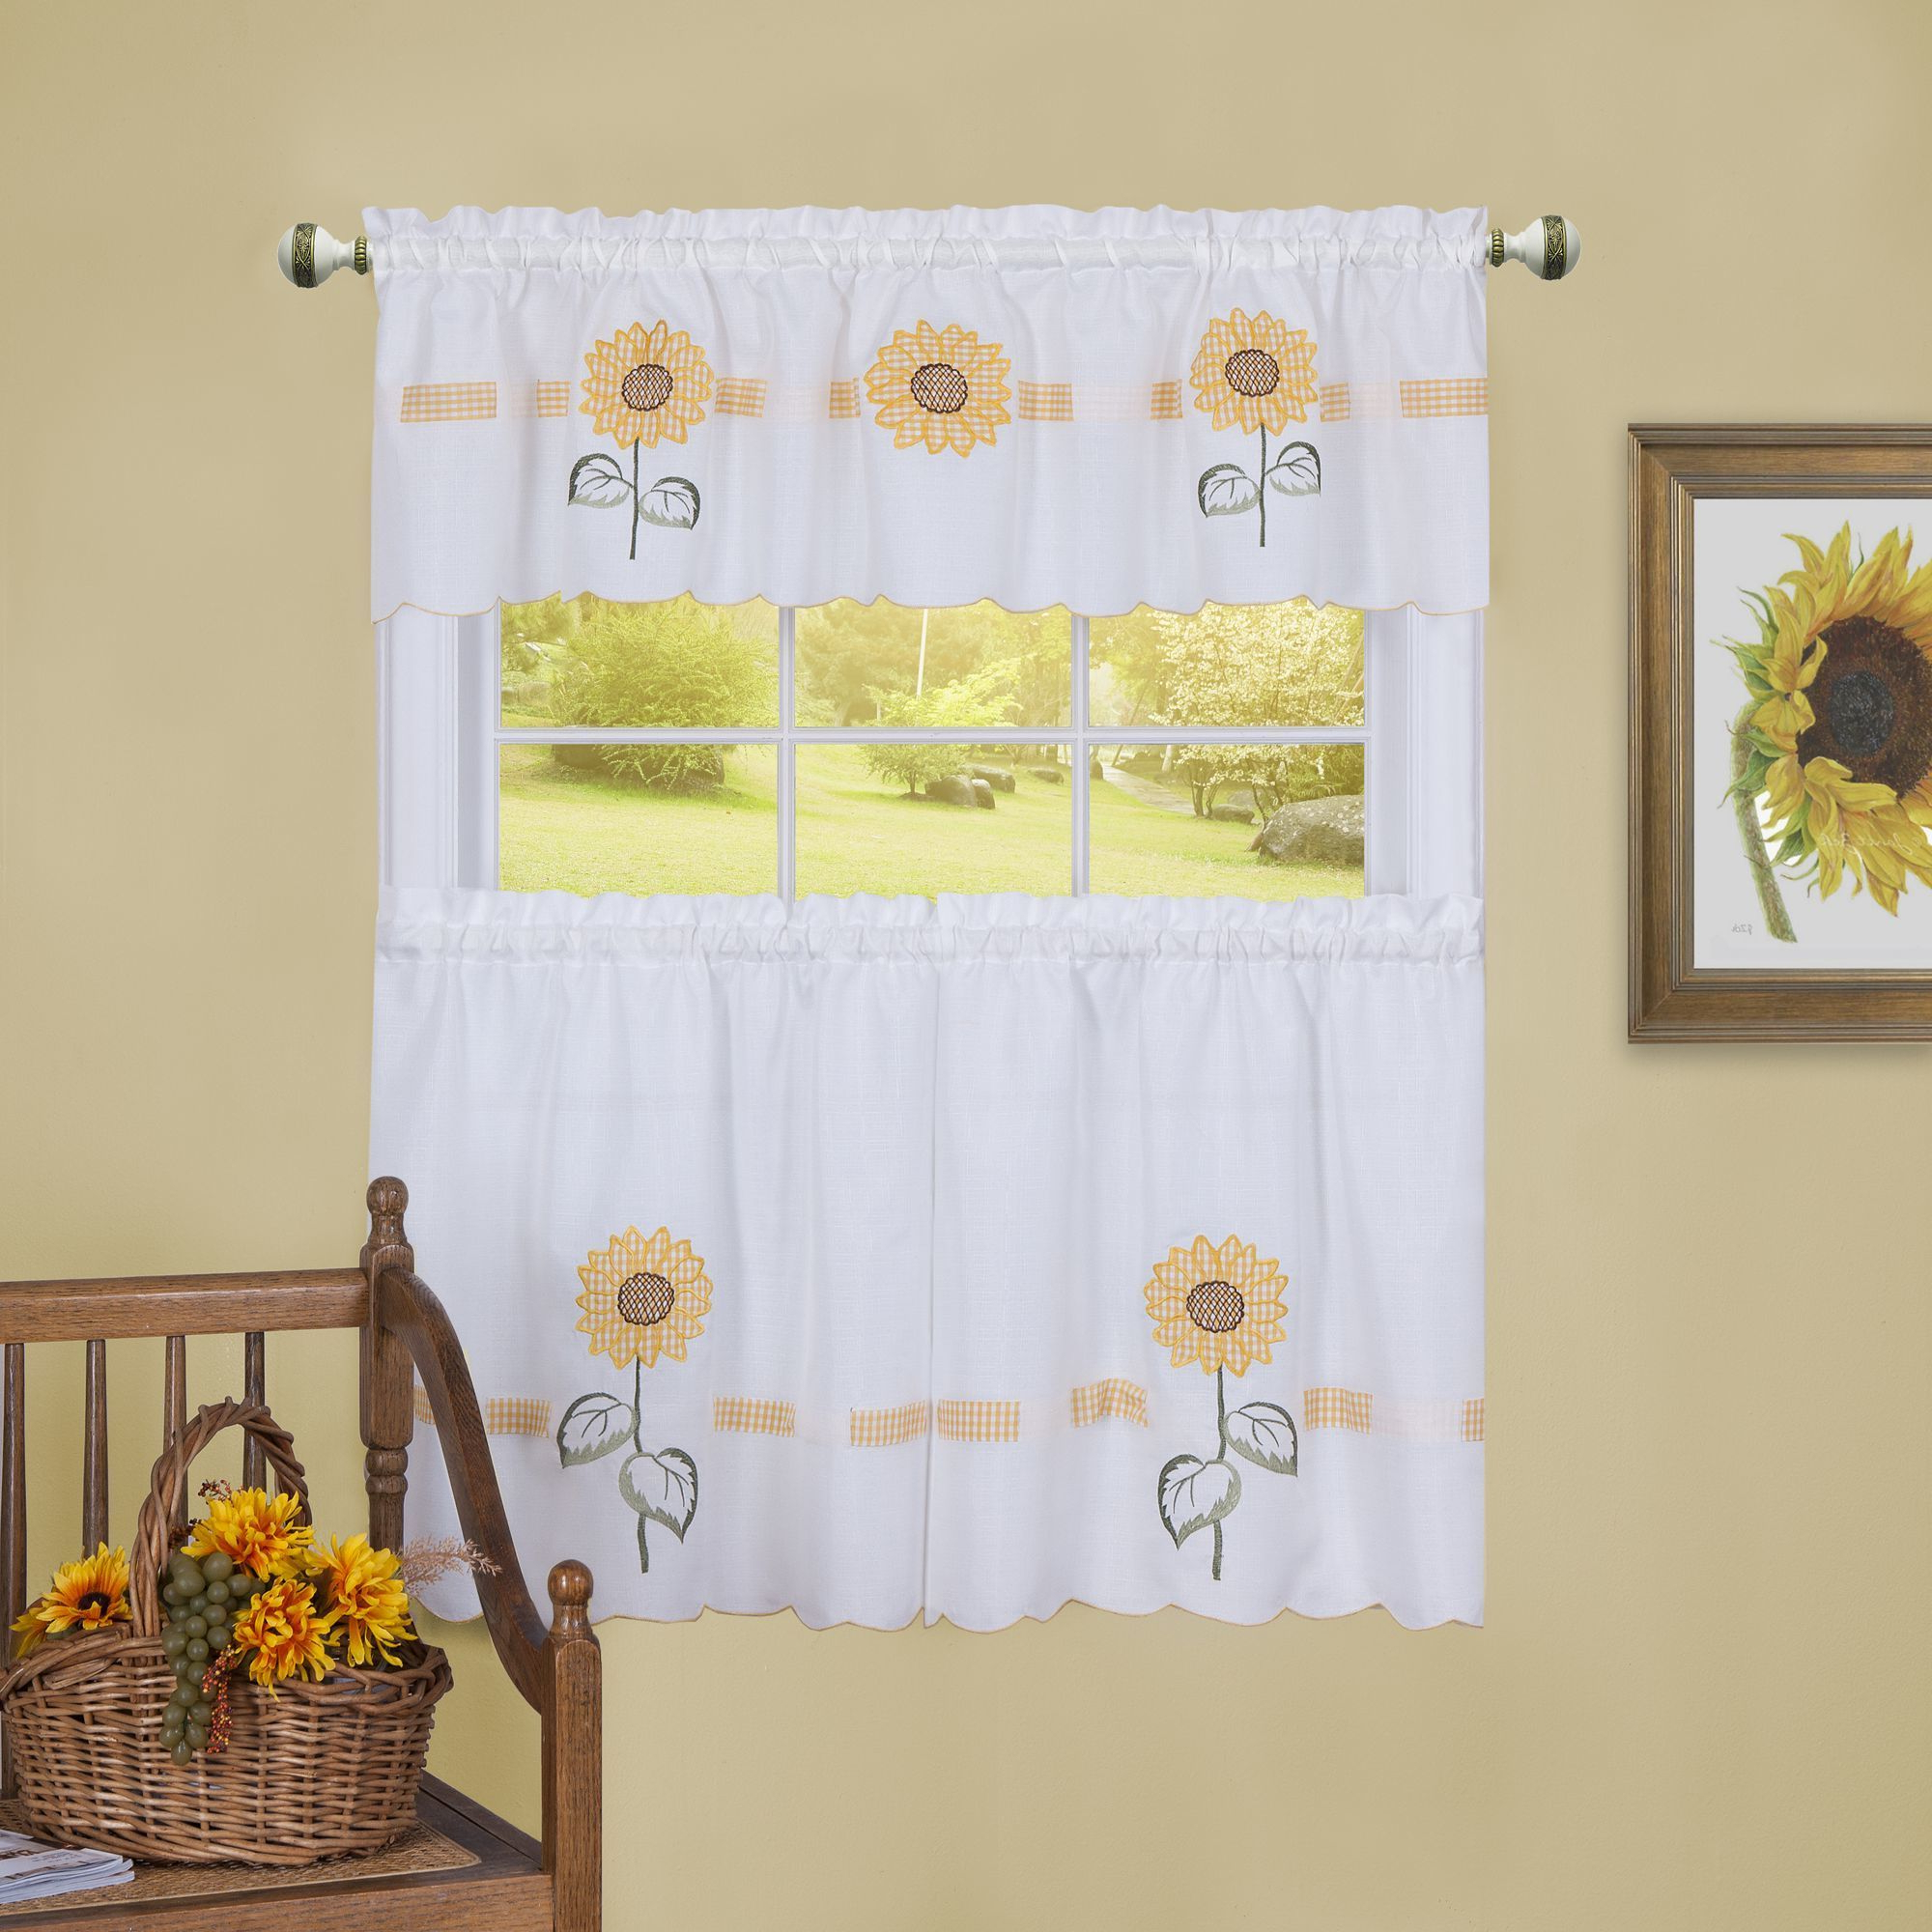 2021 Sun Blossoms Embellished Tier And Valance Window Curtain Set Within Lemon Drop Tier And Valance Window Curtain Sets (View 11 of 20)